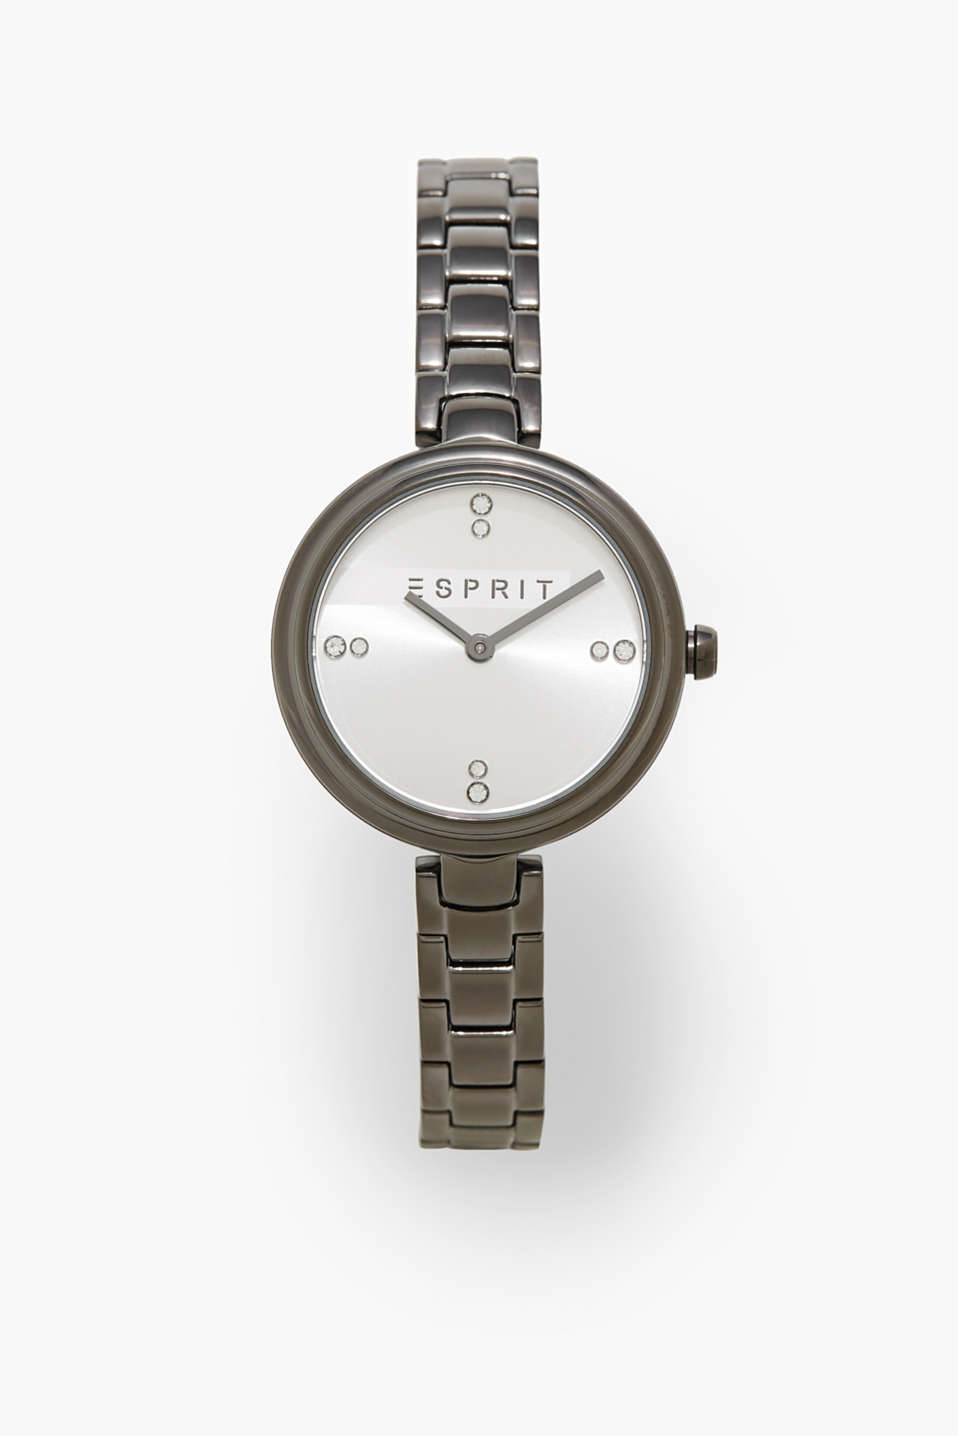 The minimalist dial with a zirconia trim and a narrow strap make this watch a timeless piece.